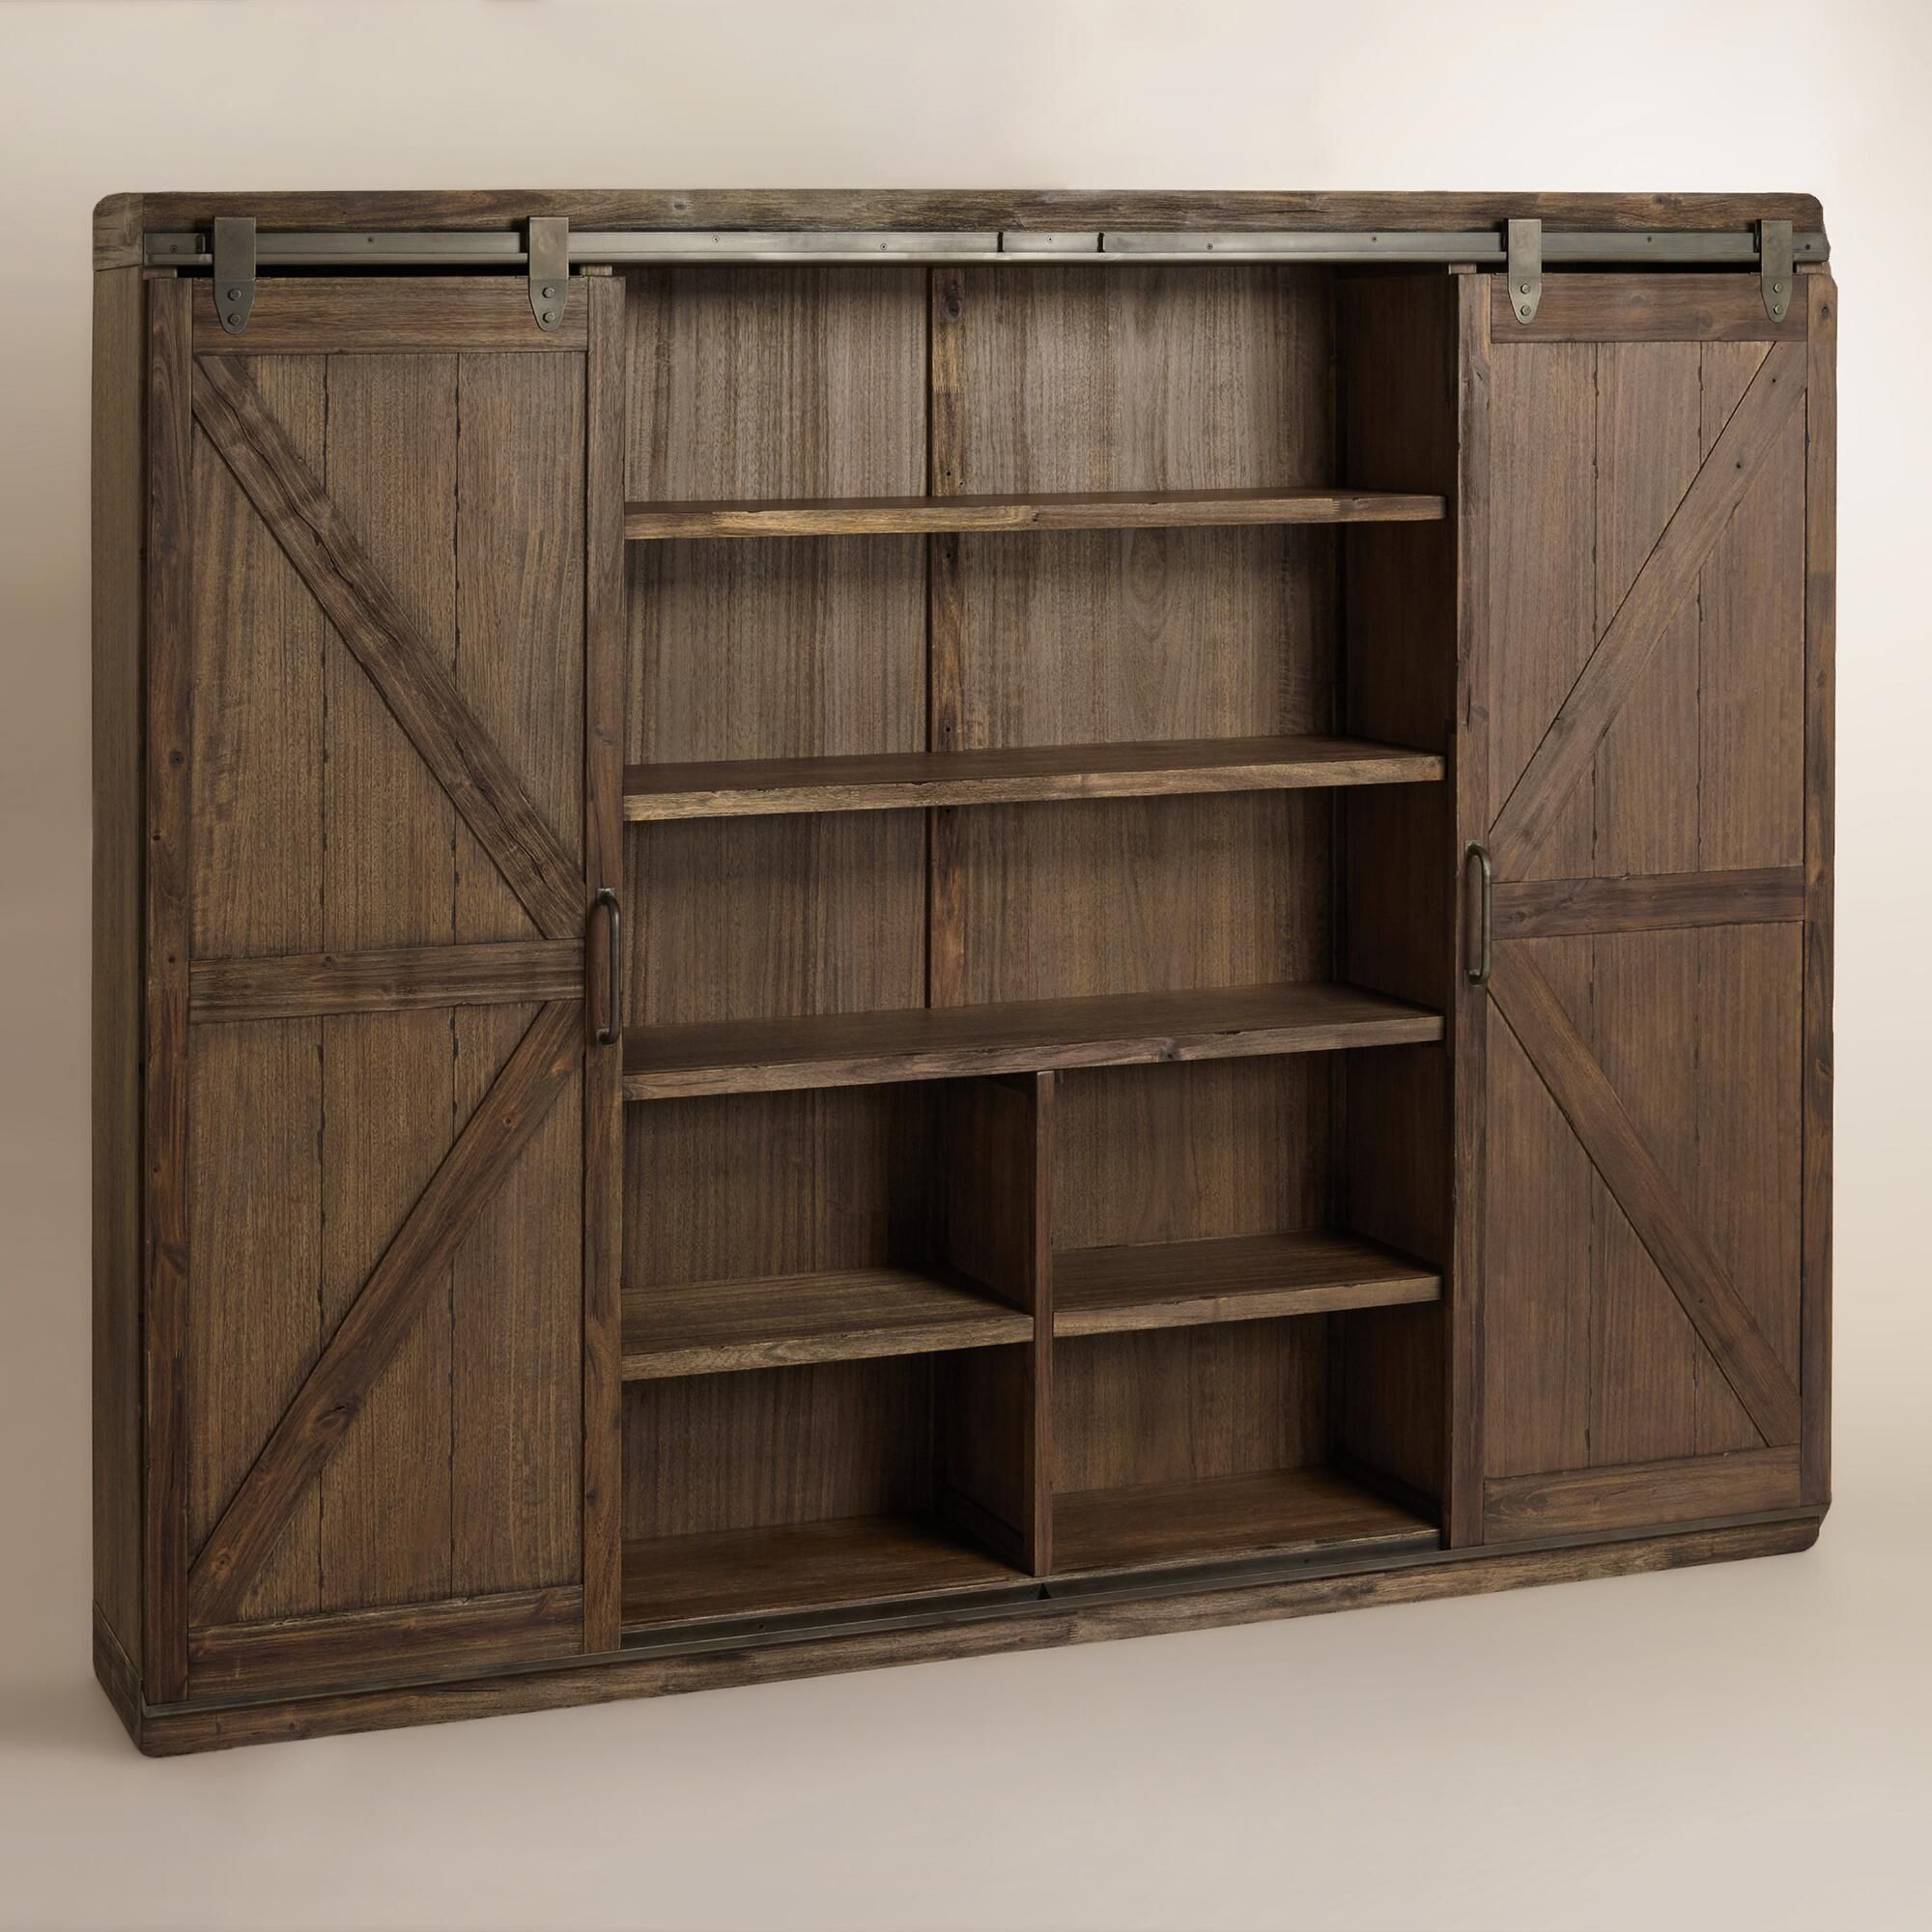 Sliding Doors The Book: Wood Farmhouse Barn Door Bookcase